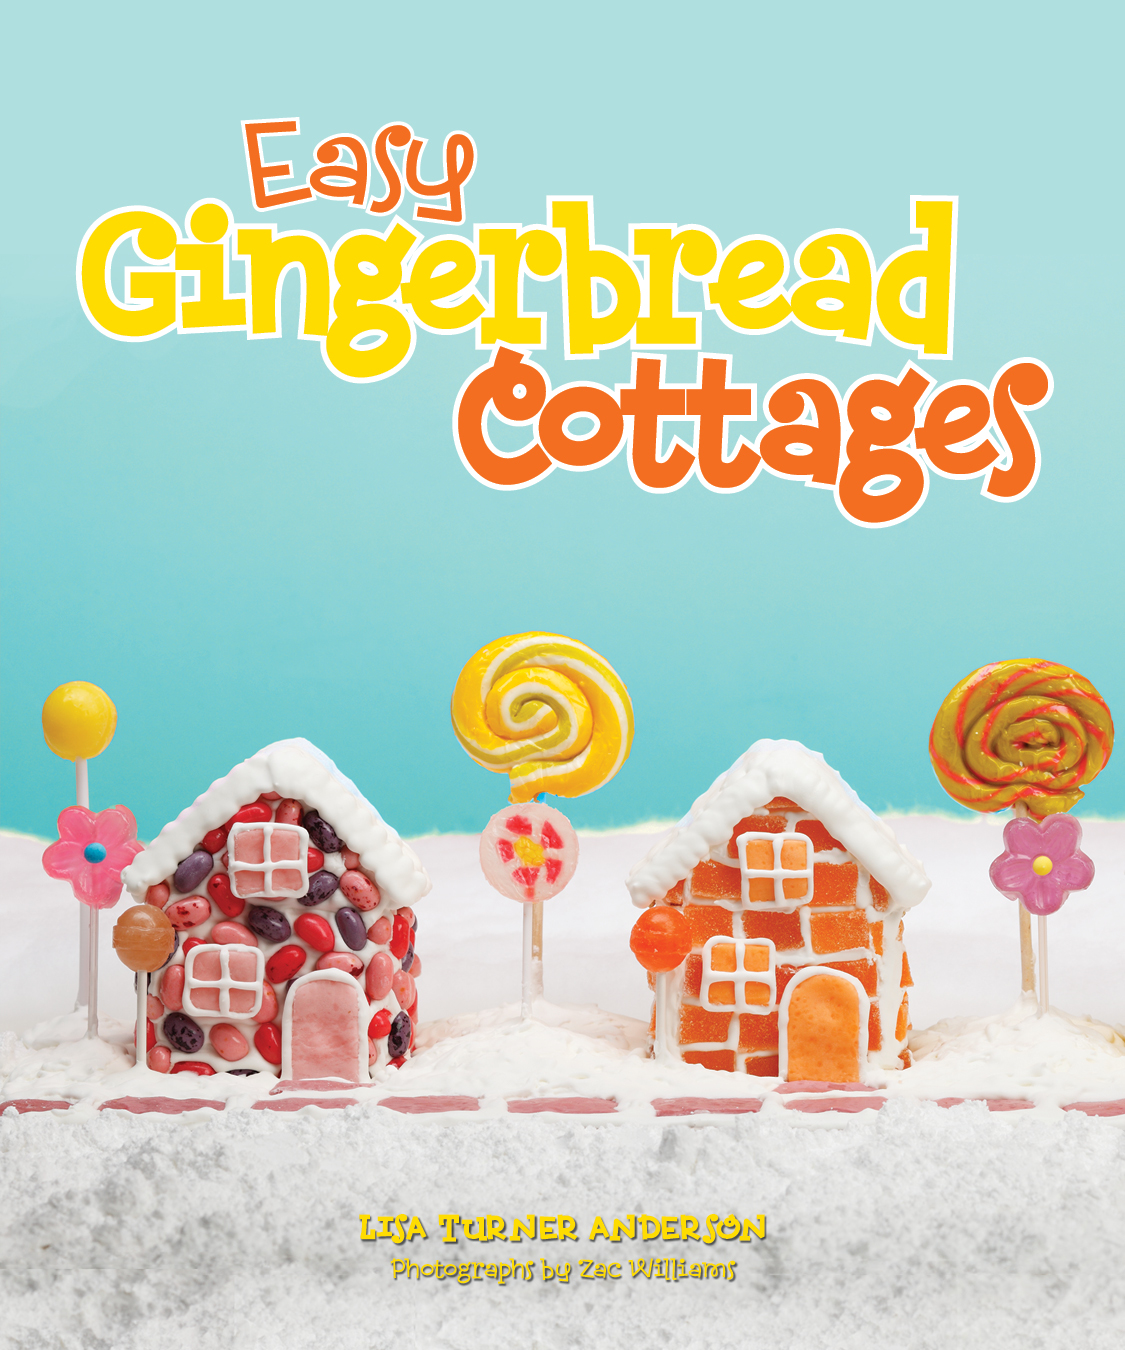 Easy Gingerbread Cottages